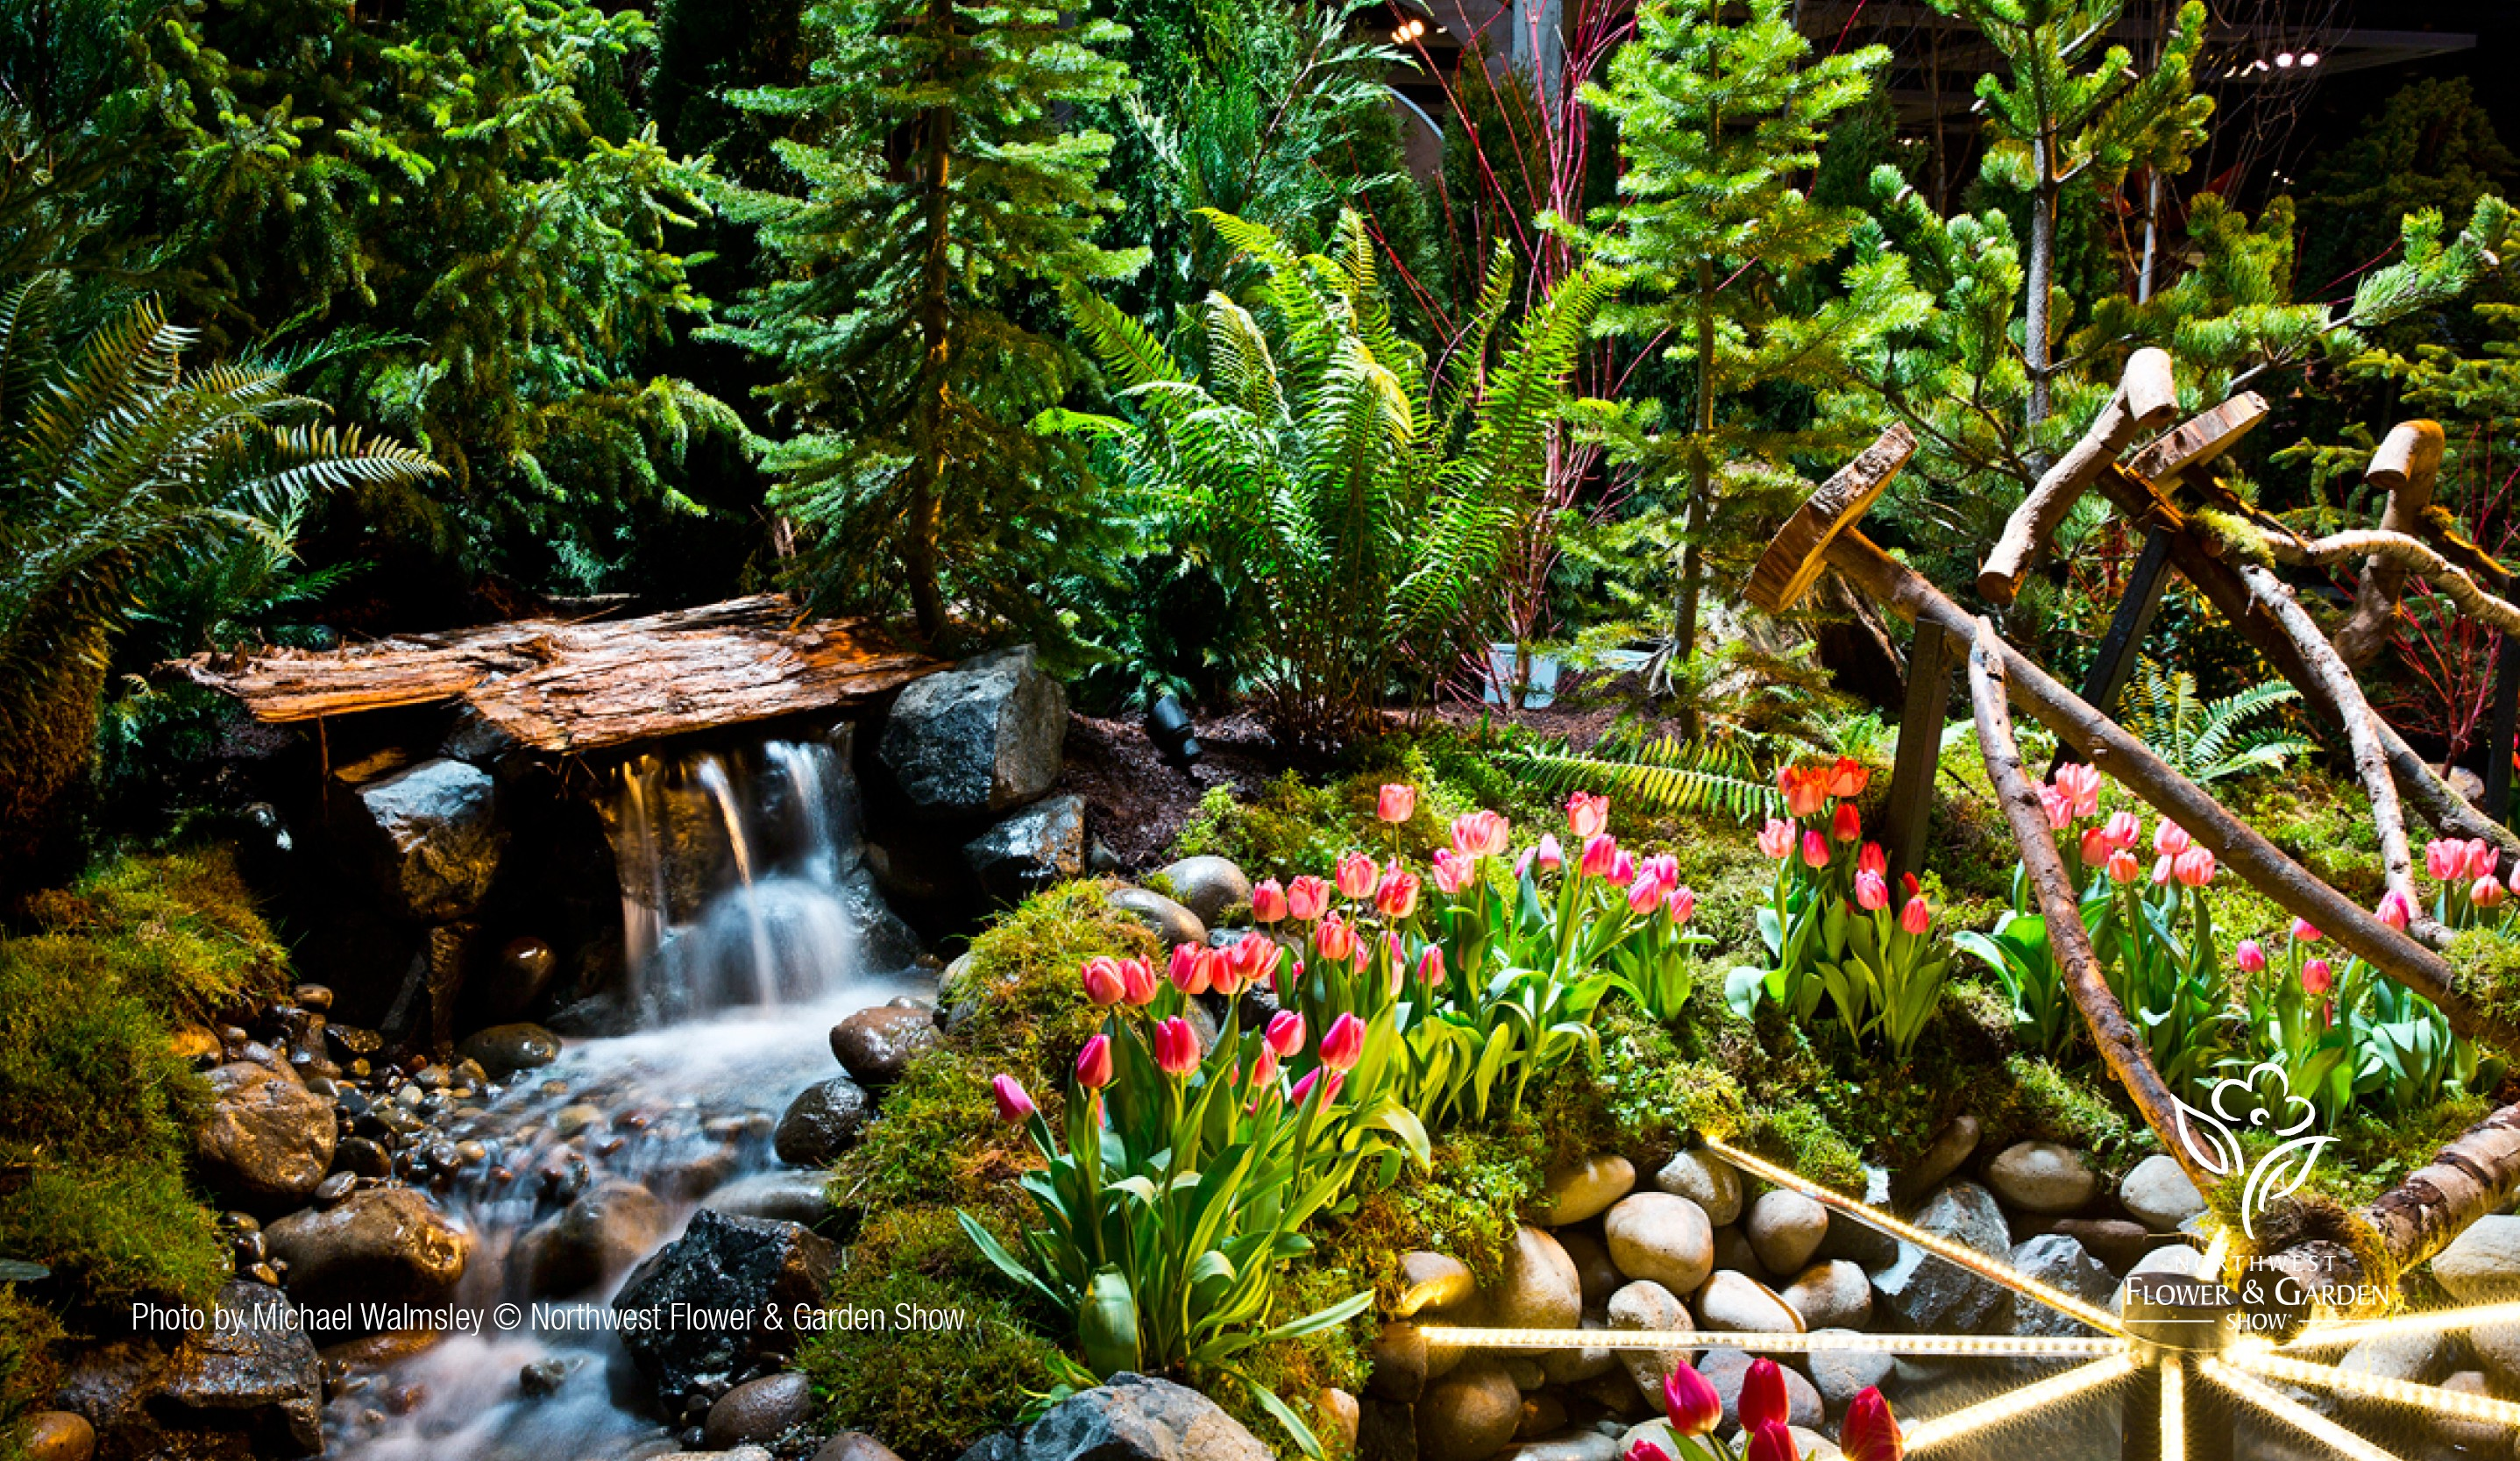 northwest flower garden show - Northwest Flower And Garden Show